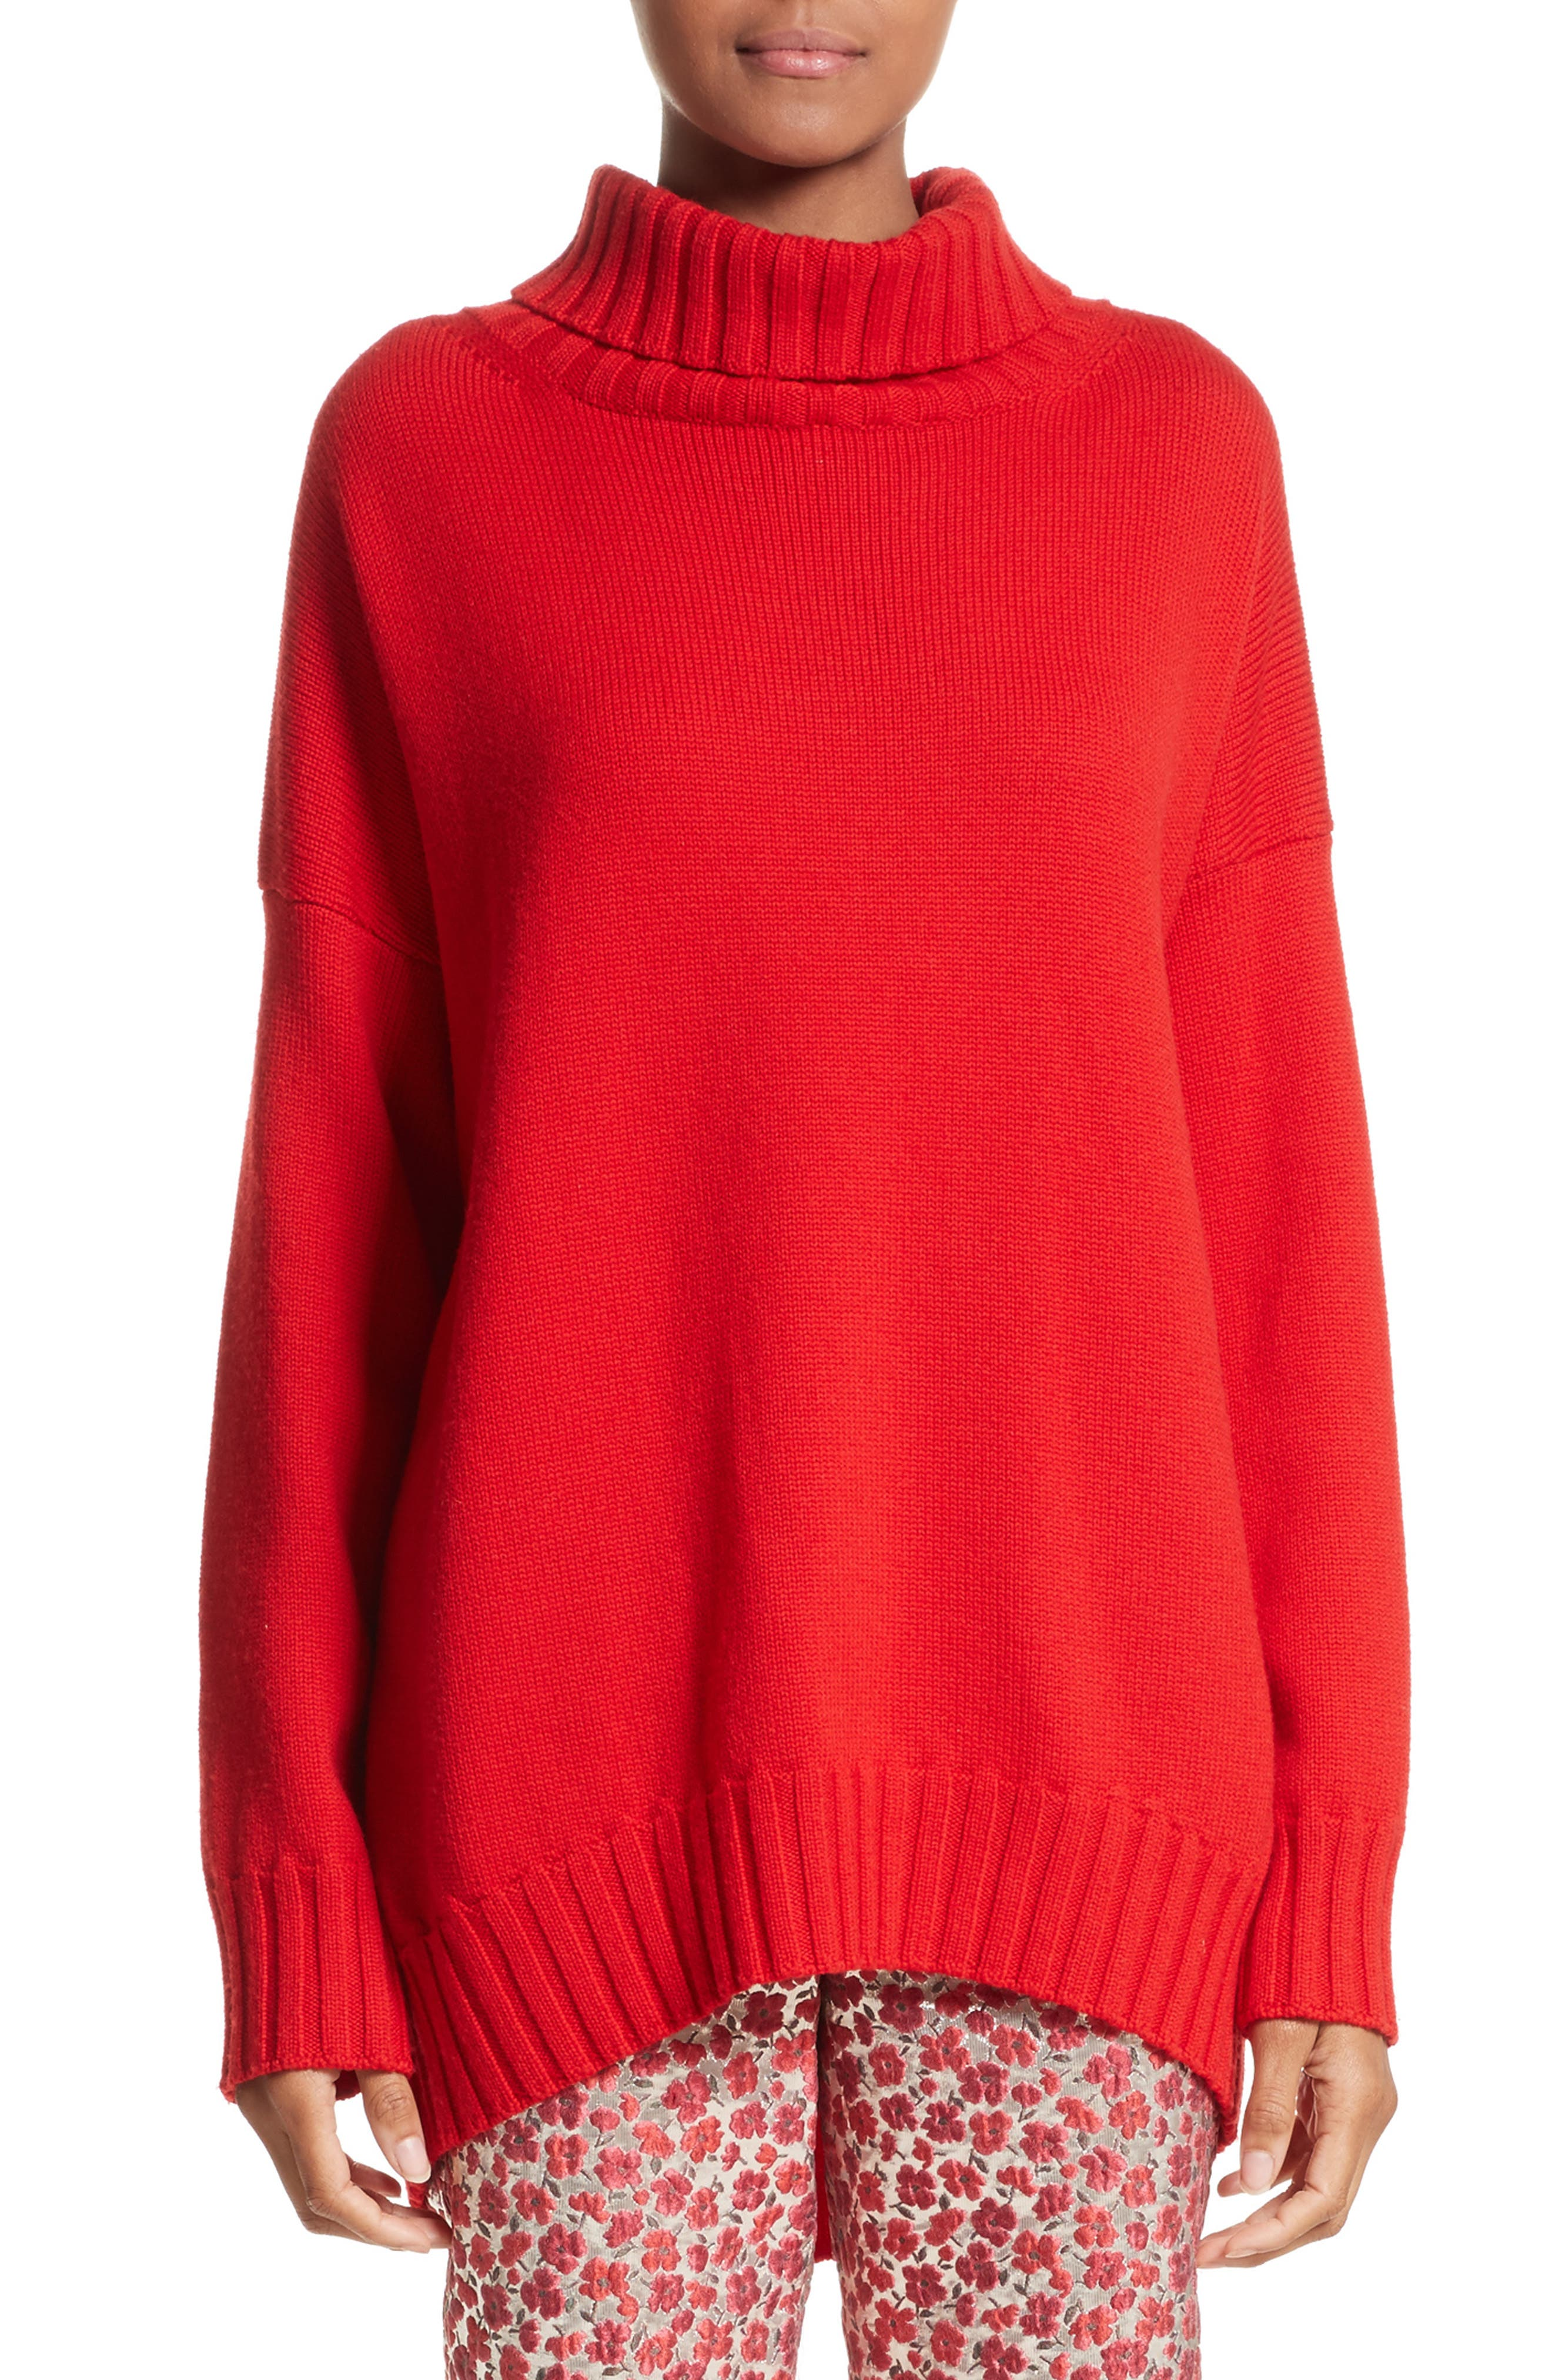 Oscar de la Renta Virgin Wool Turtleneck Sweater